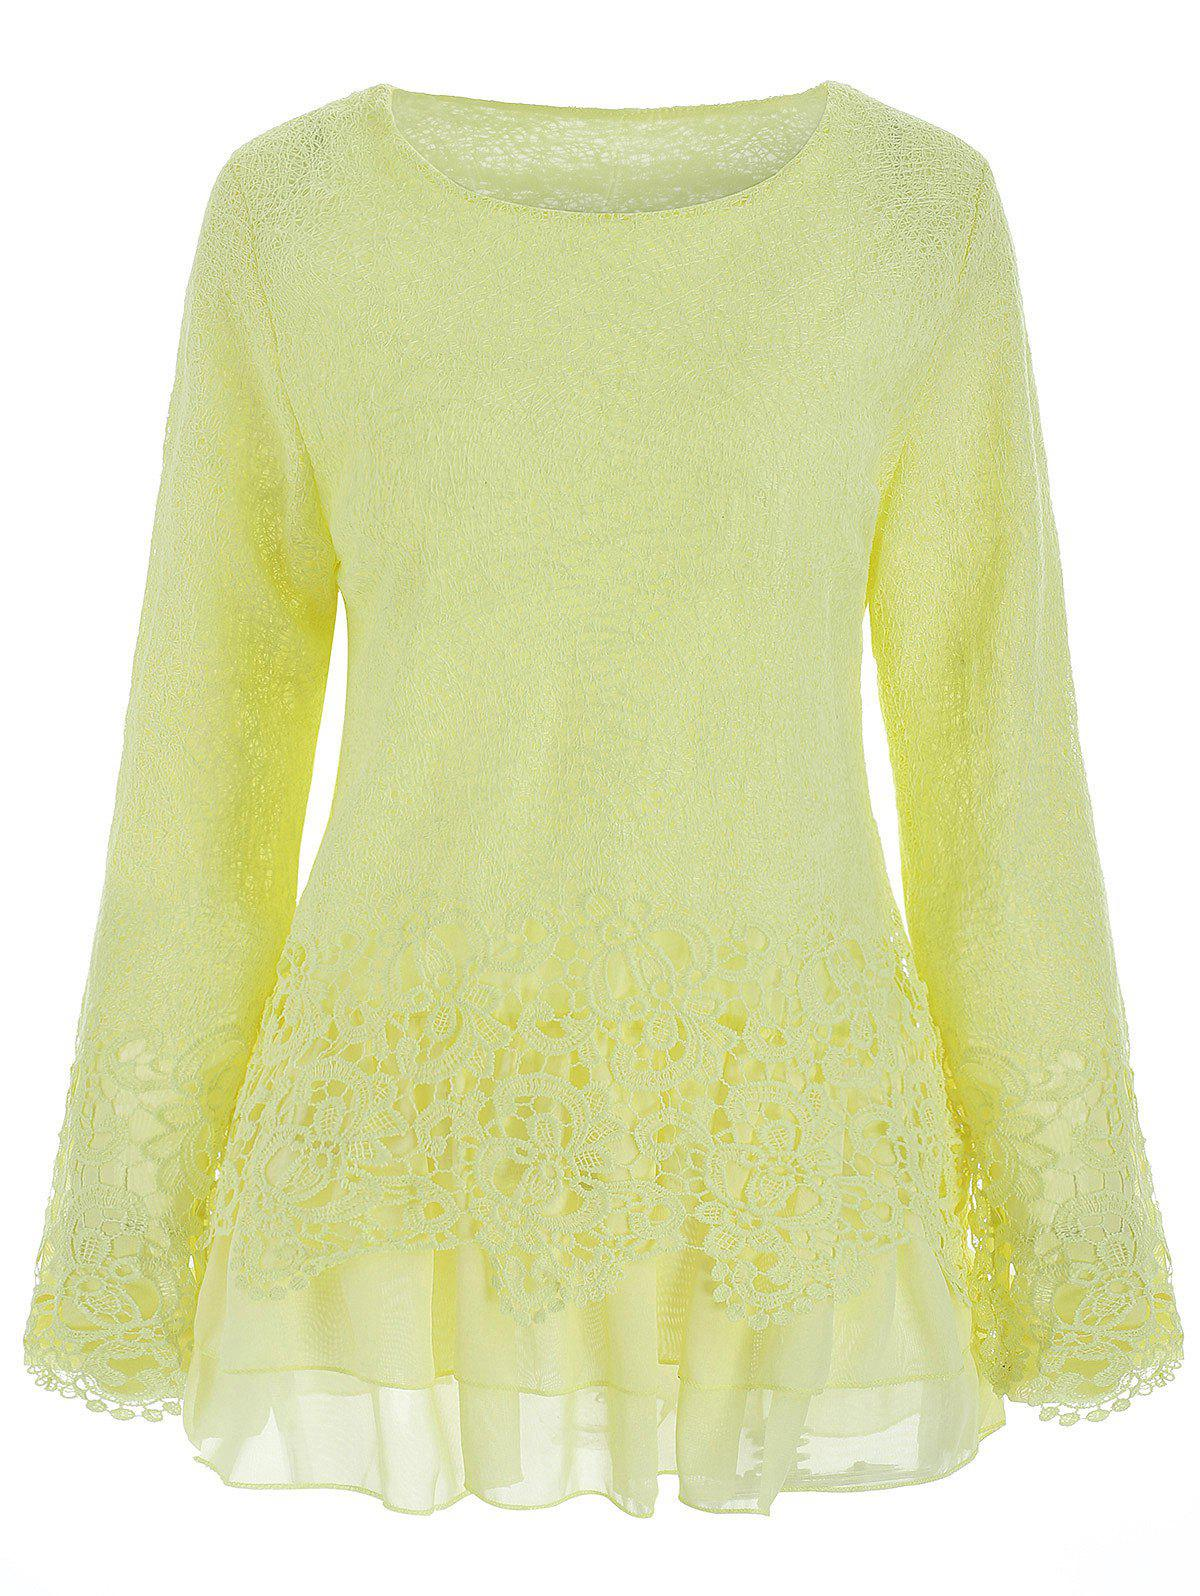 Latest Chic Round Collar Long Sleeve Lace Spliced Women's Blouse